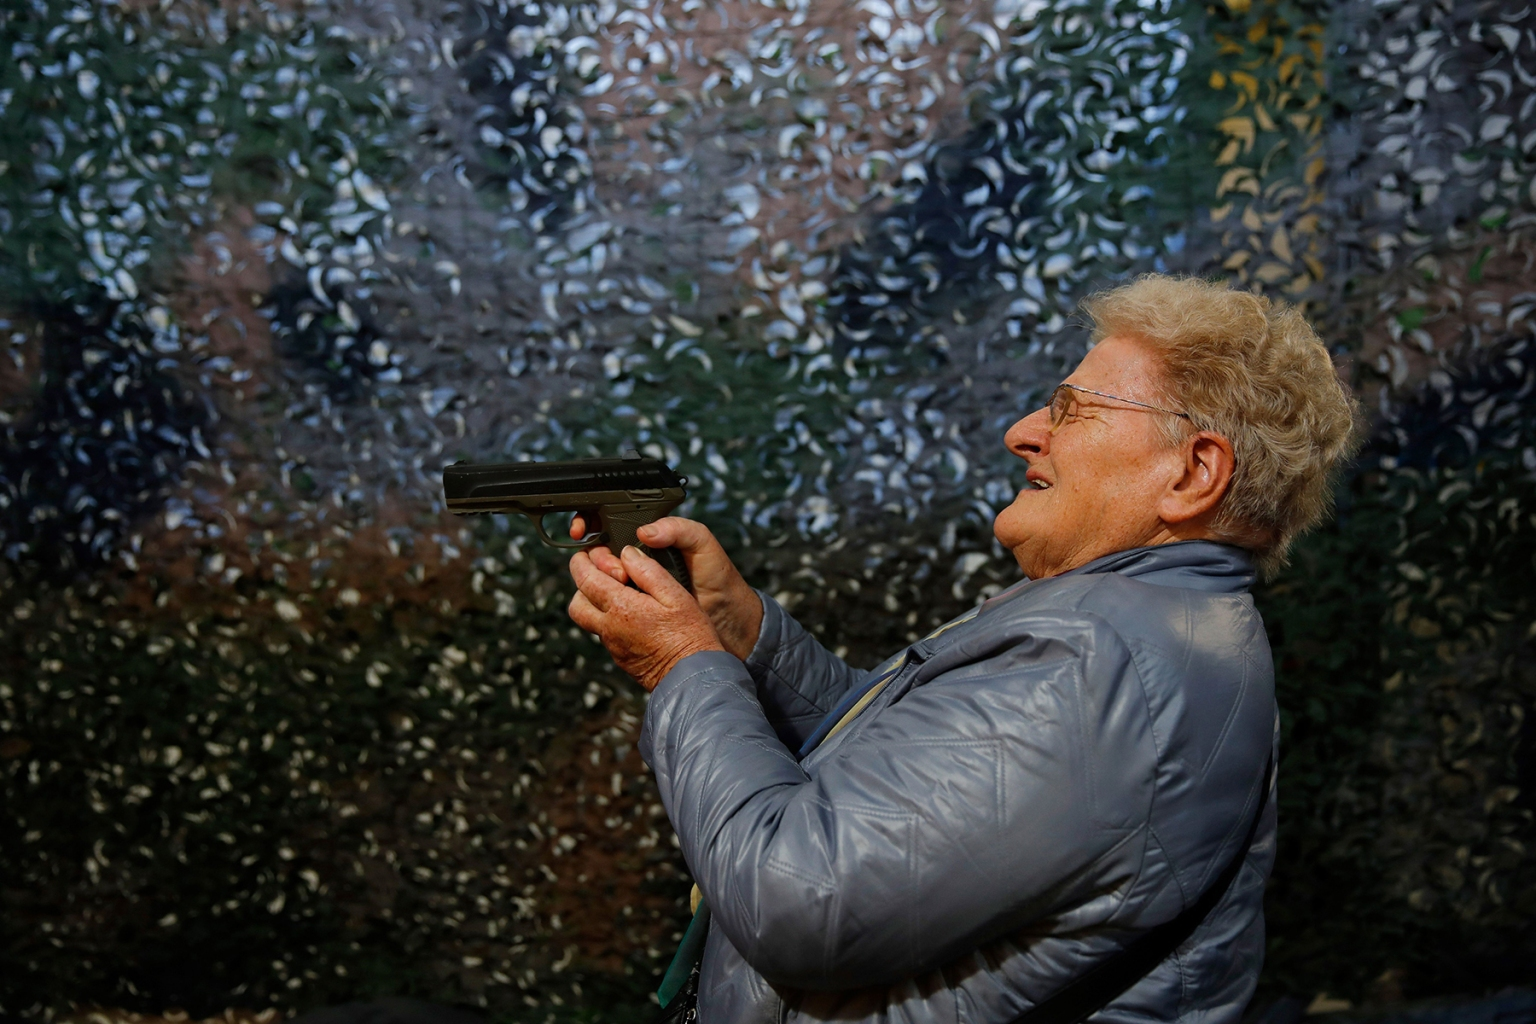 A visitor tries a handgun during the annual Arms Trade Fair in Lucerne, Switzerland, on March 29.  In a country where compulsory military service means many are comfortable with weapons, voters might, in a May 2019 referendum, push back against gun reforms demanded by the European Union. STEFAN WERMUTH/AFP/Getty Images